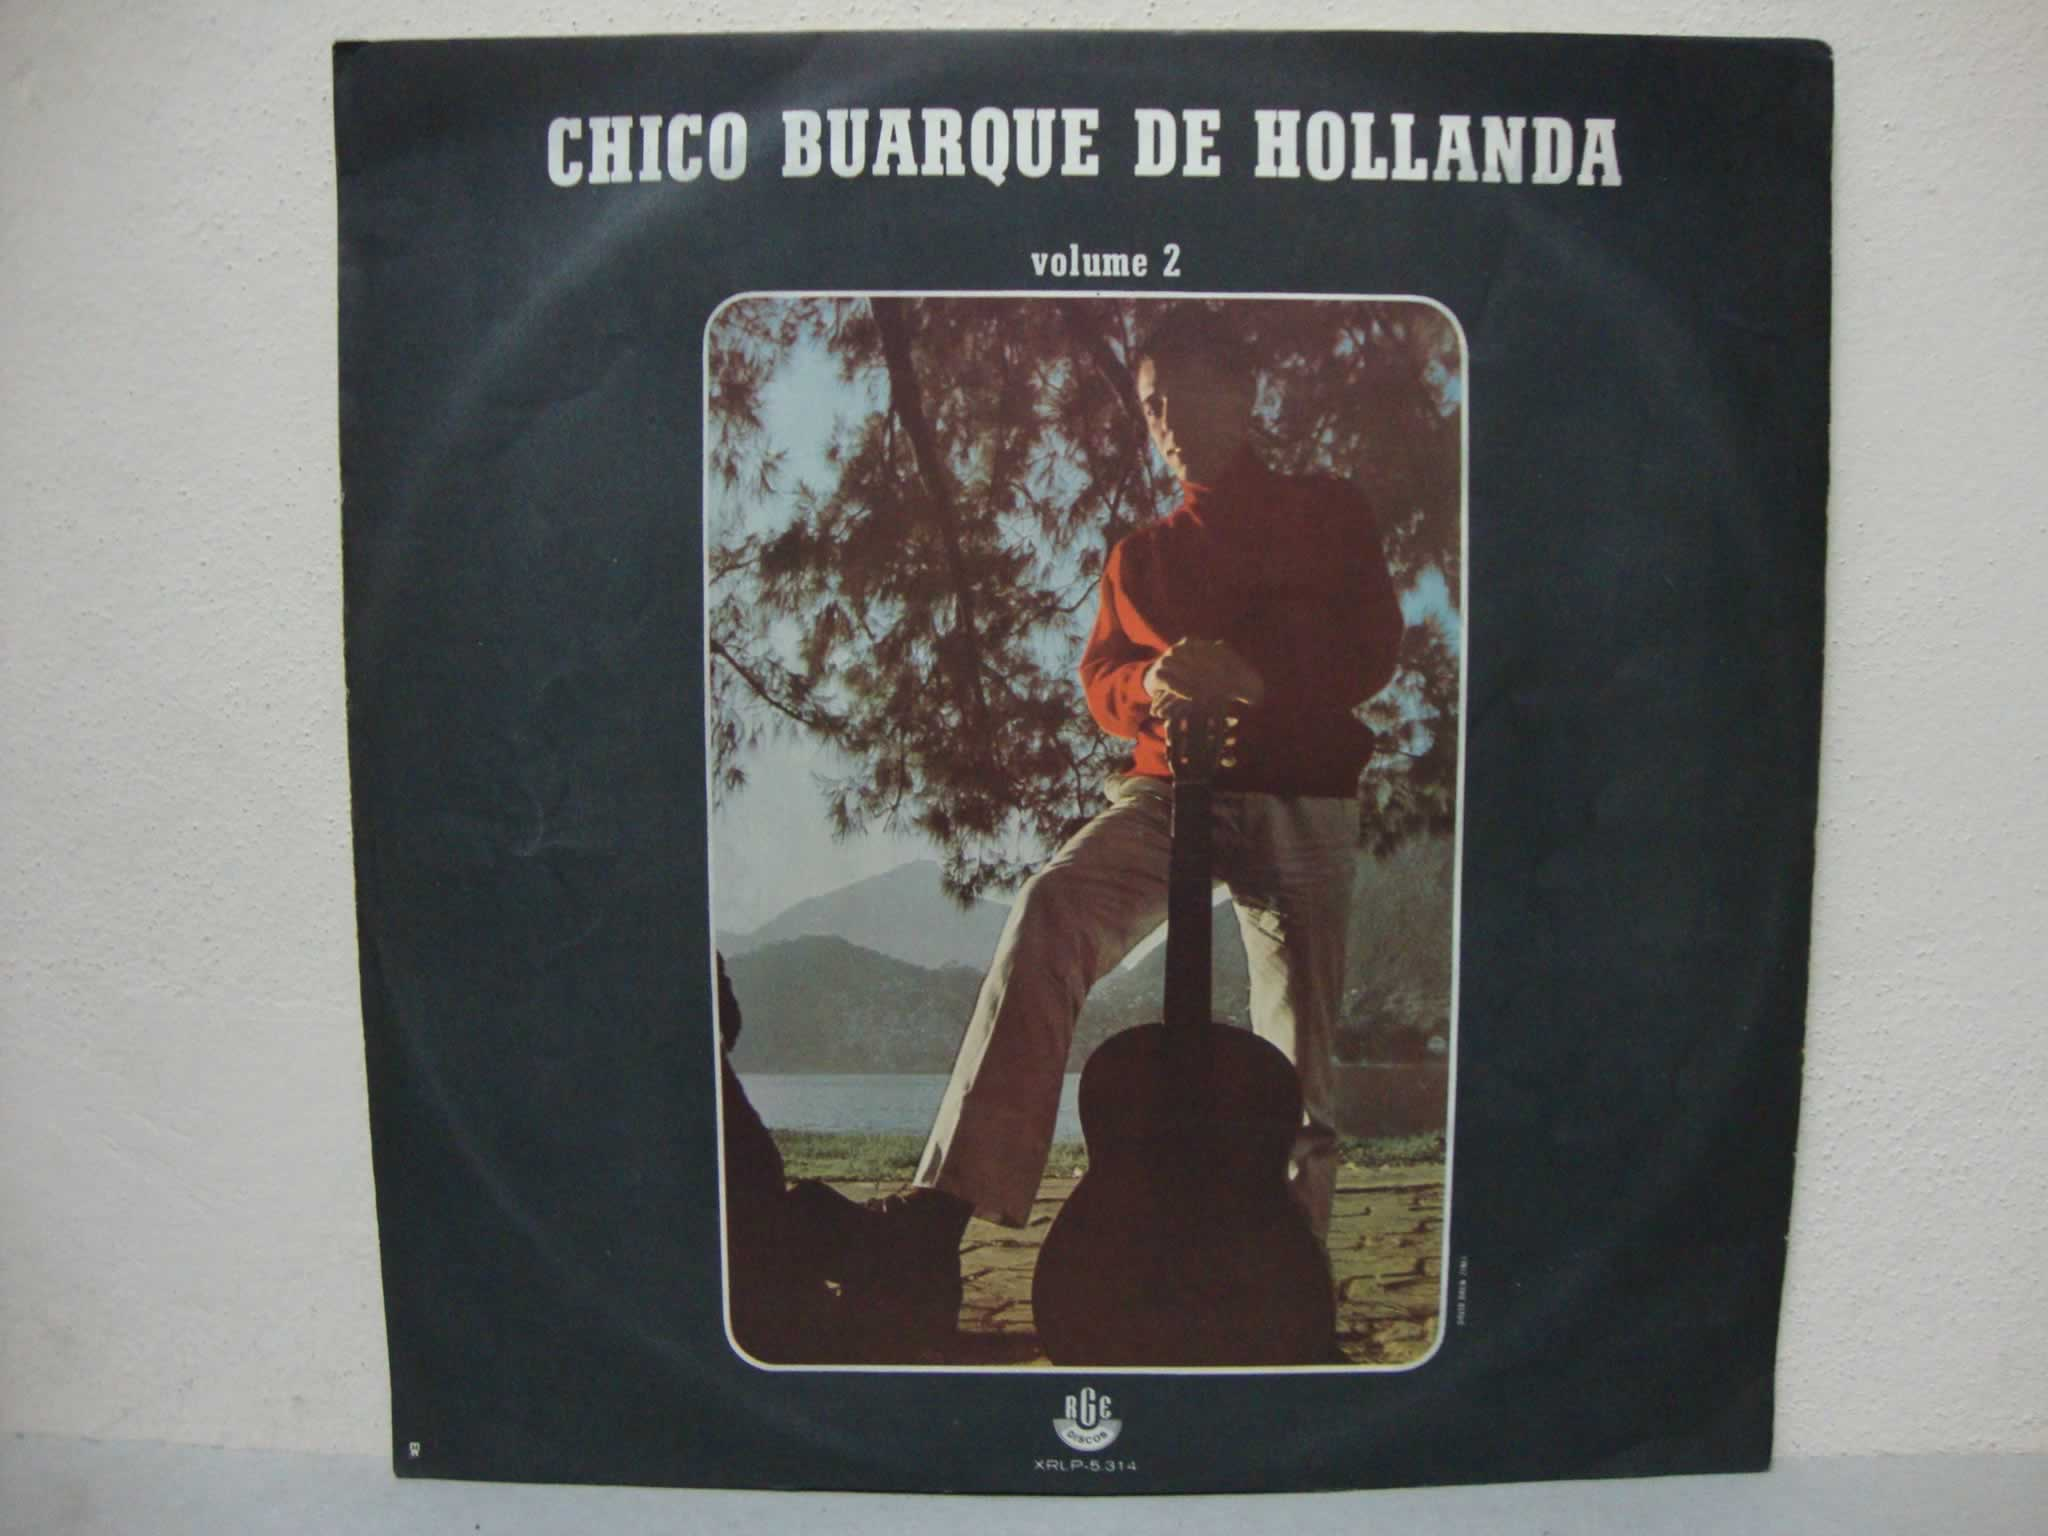 VINIL CHICO BUARQUE DE HOLLANDA VOLUME 2